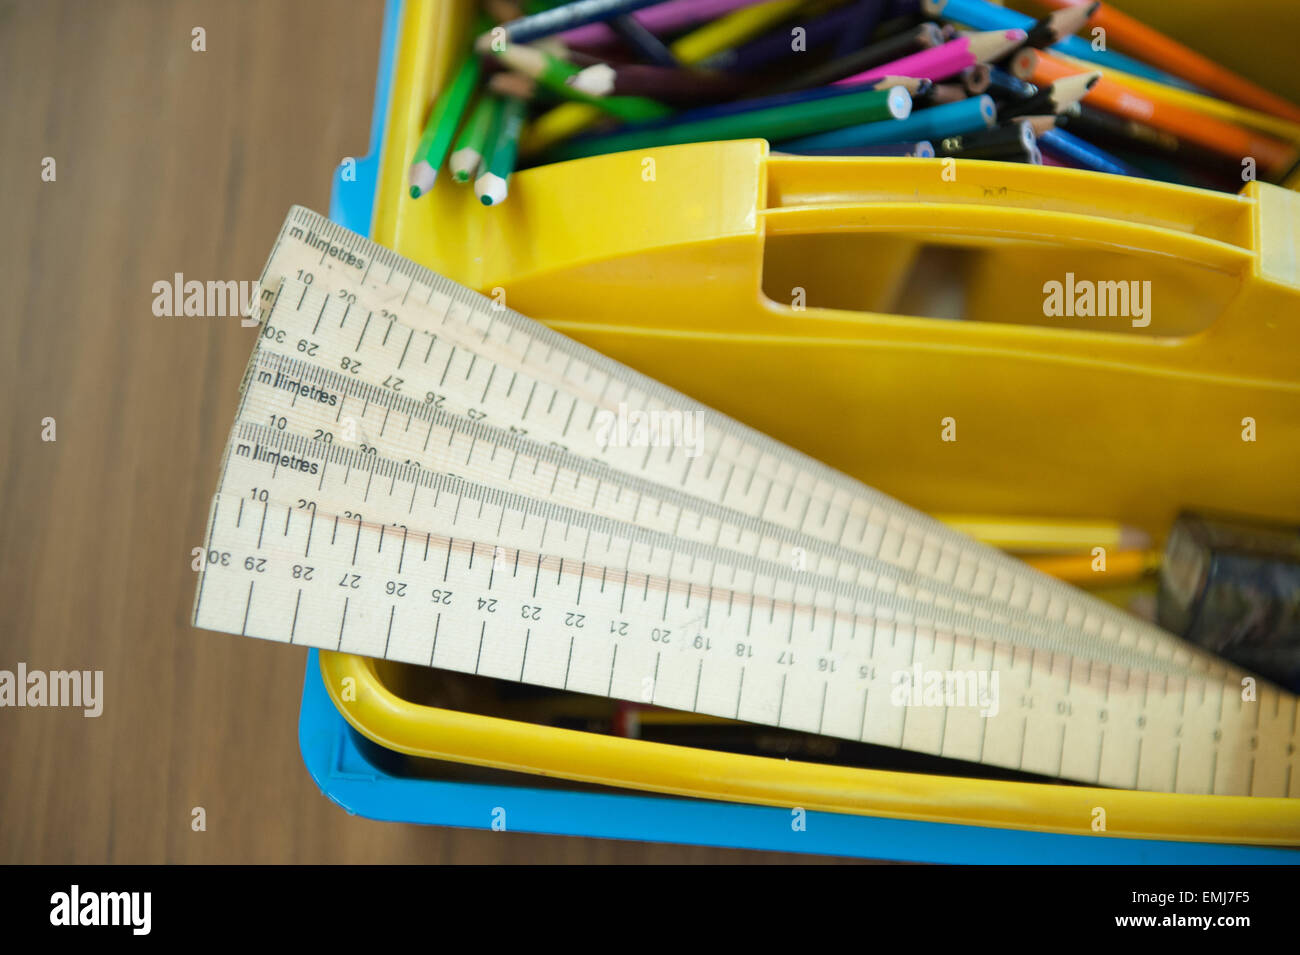 A box of rulers and coloured pencils in a UK classroom - Stock Image